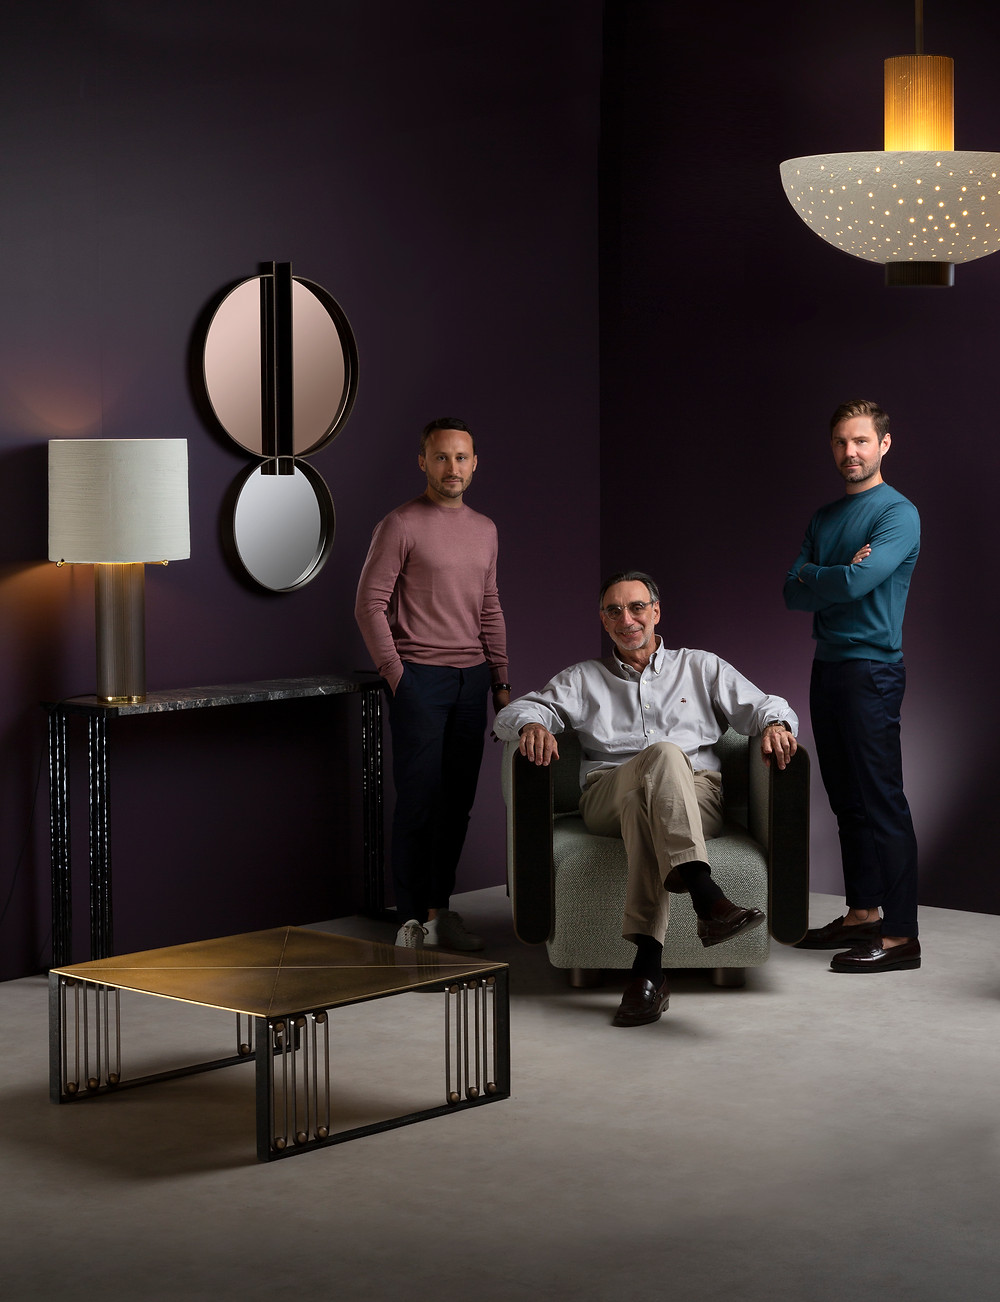 Christophe Poyet, Jacques Rayet&Emil Humbert with Metamorphosis furniture and lighting collection.